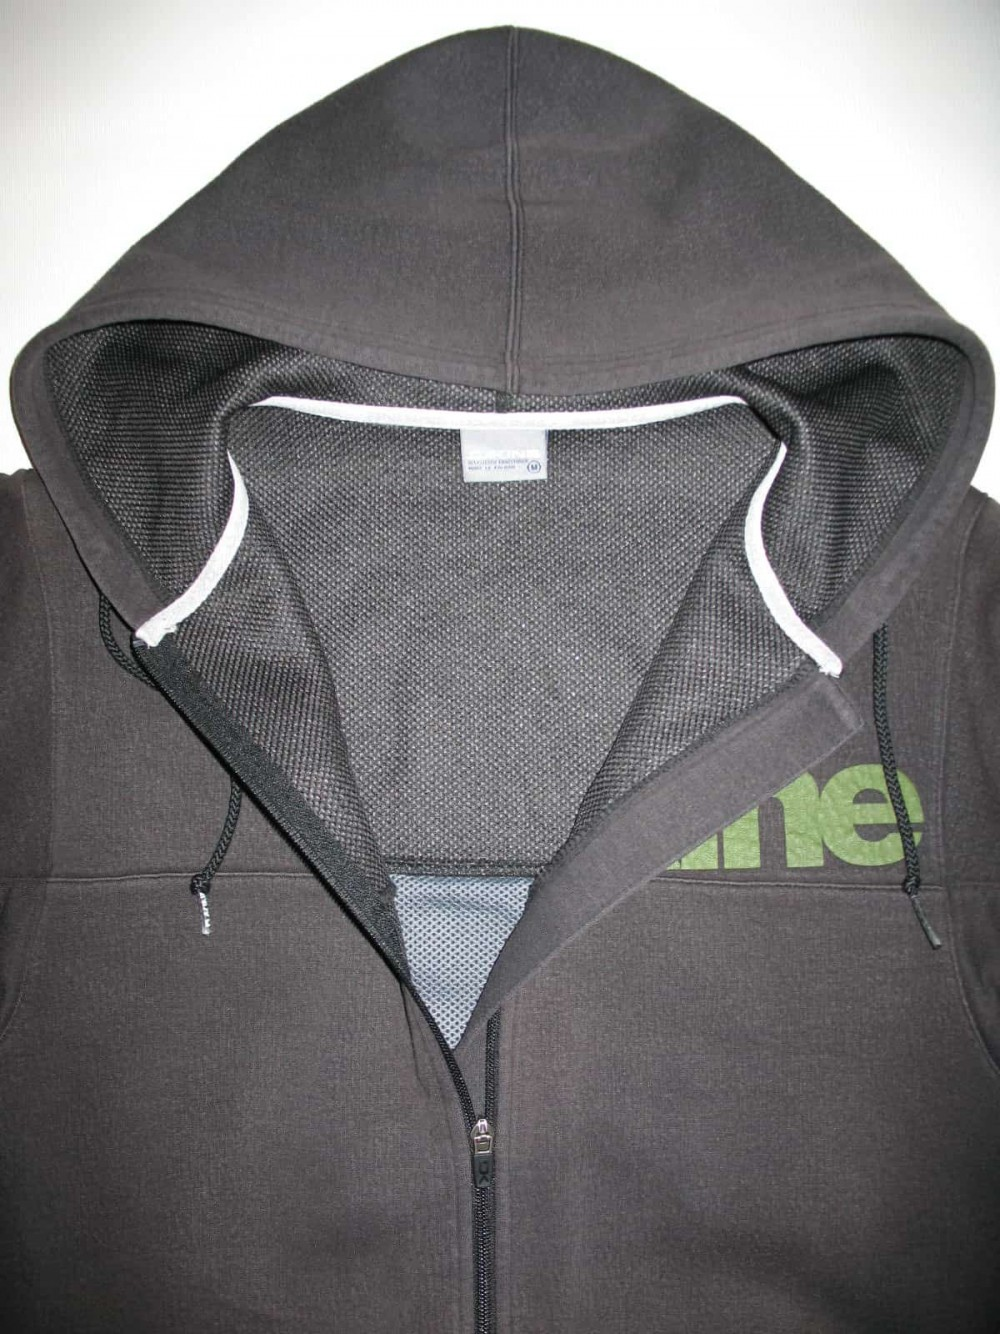 Куртка DAKINE windstopper hoody (размер M) - 3